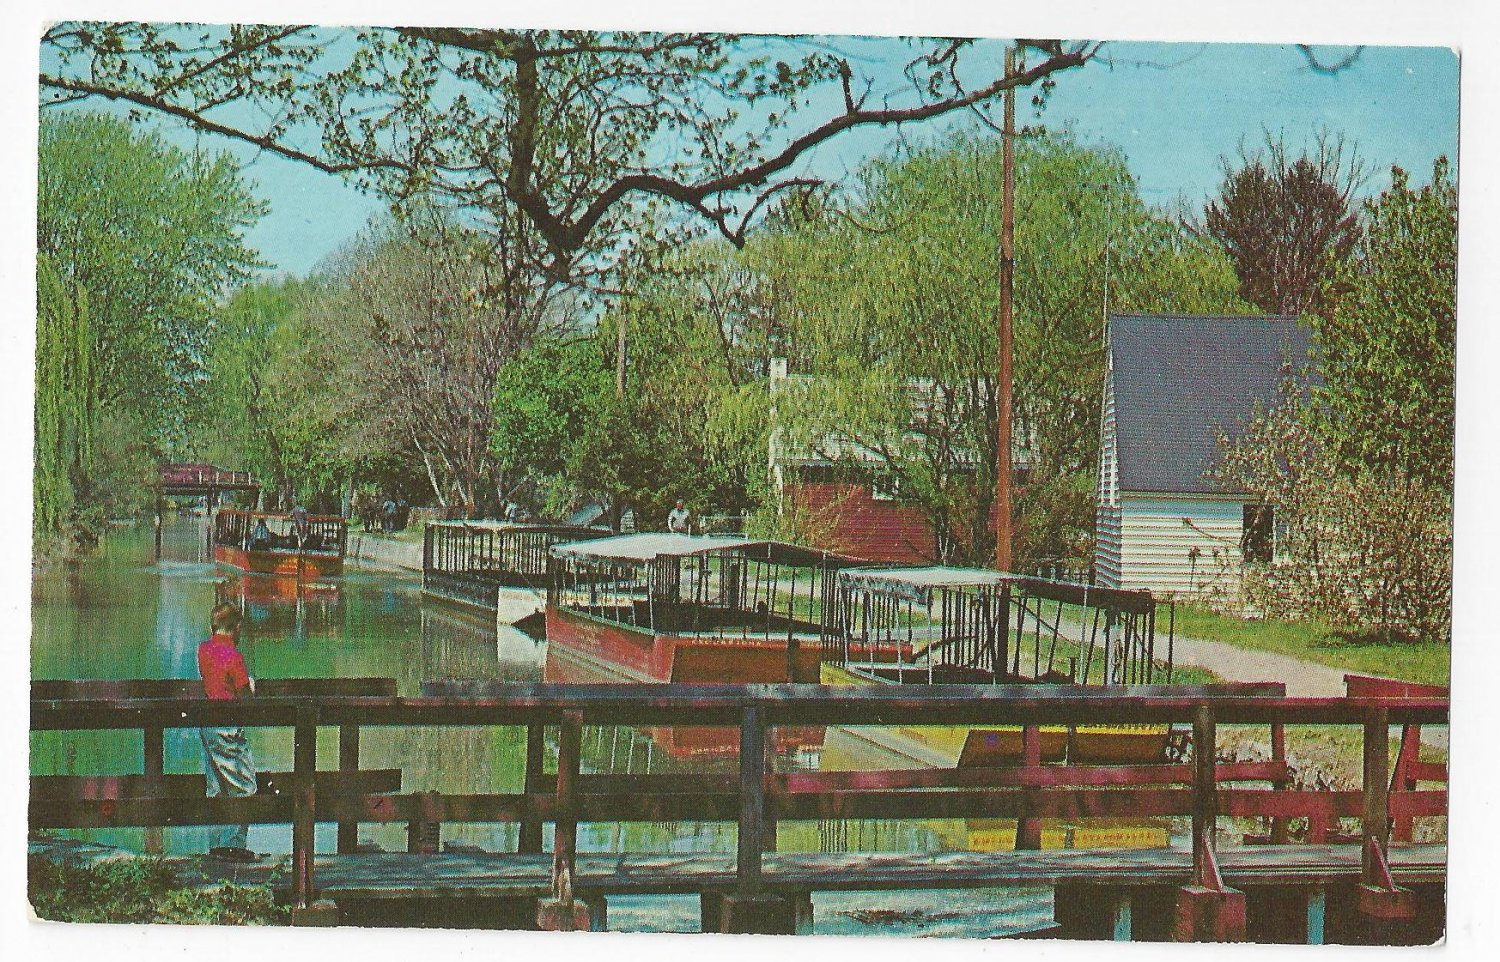 New Hope Bucks County PA Barges Delaware Canal 1963 Postcard